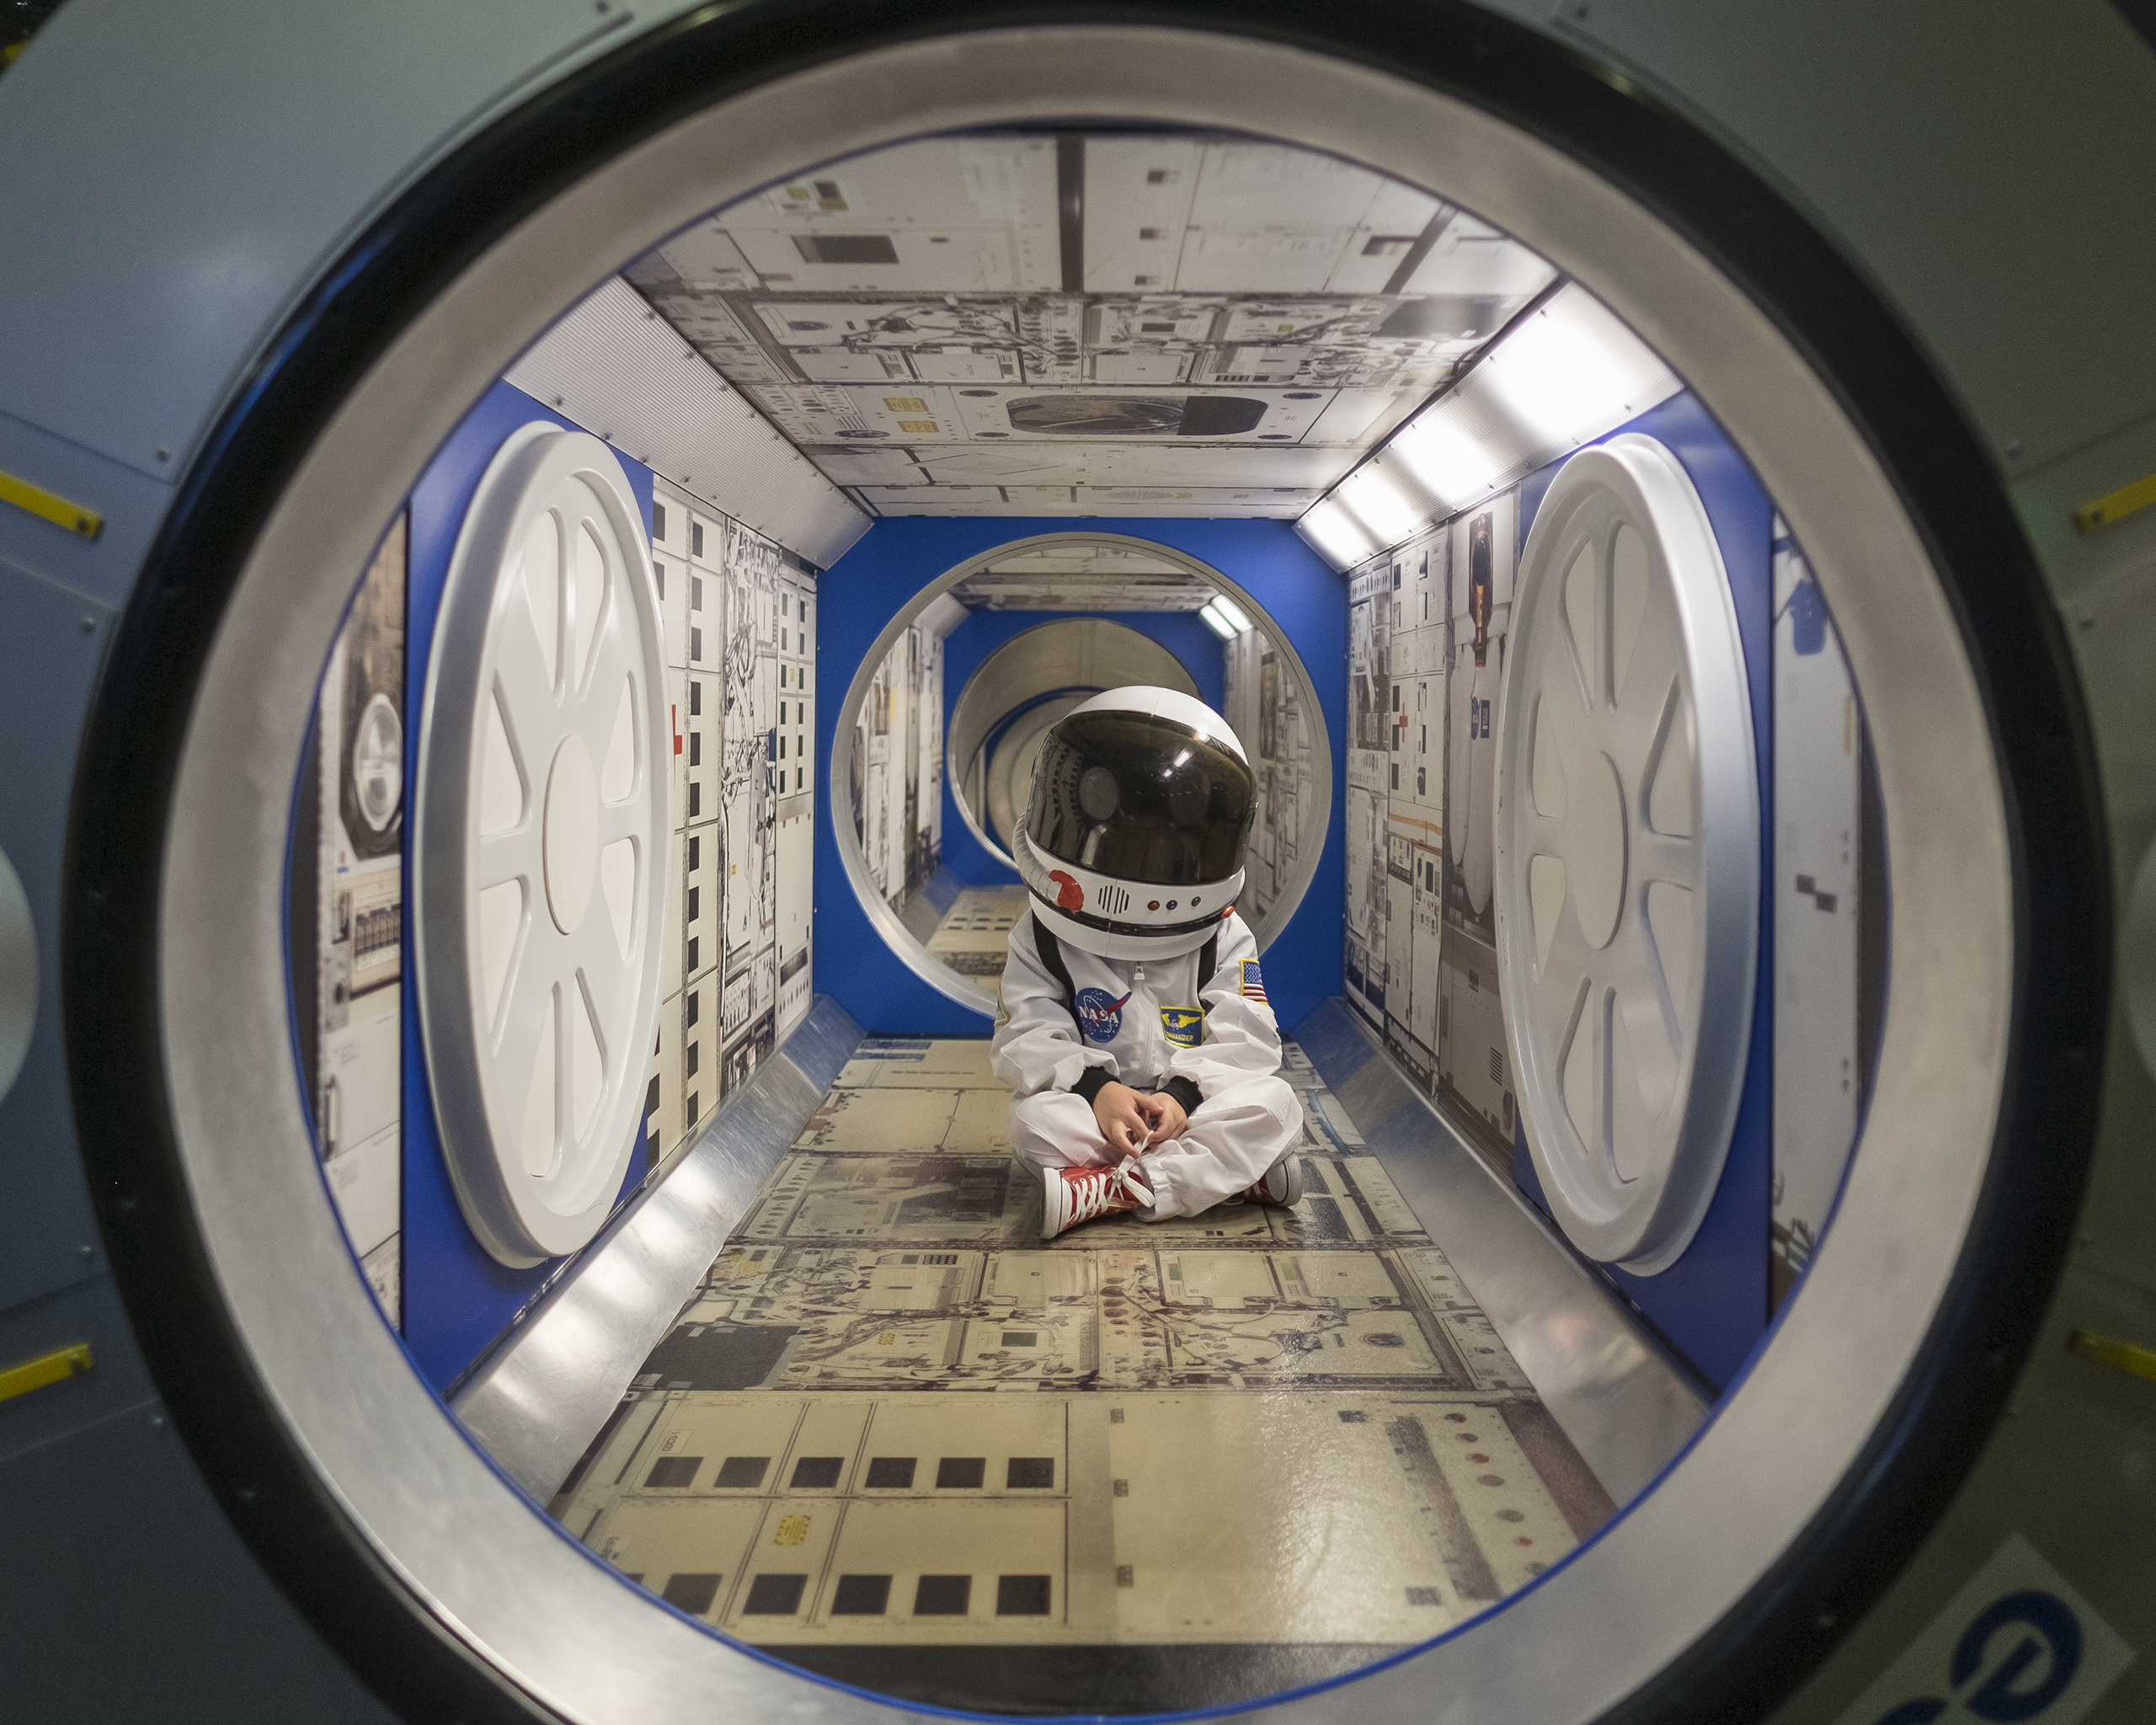 Hanging out in the International Space Station exhibit, July 20, 2016.